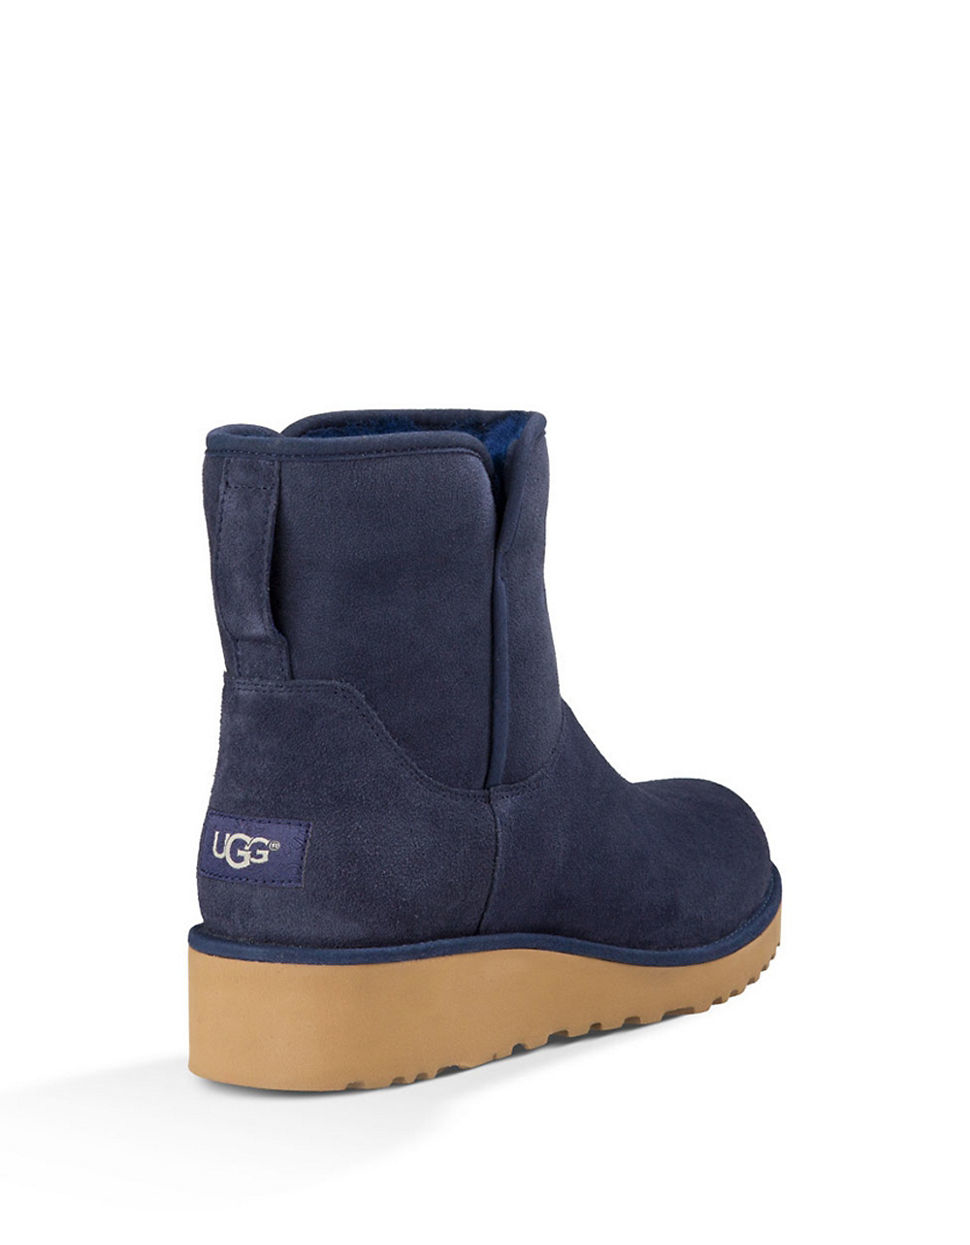 Ugg Kristin Sheepskin Wedge Ankle Boots In Navy Blue Blue